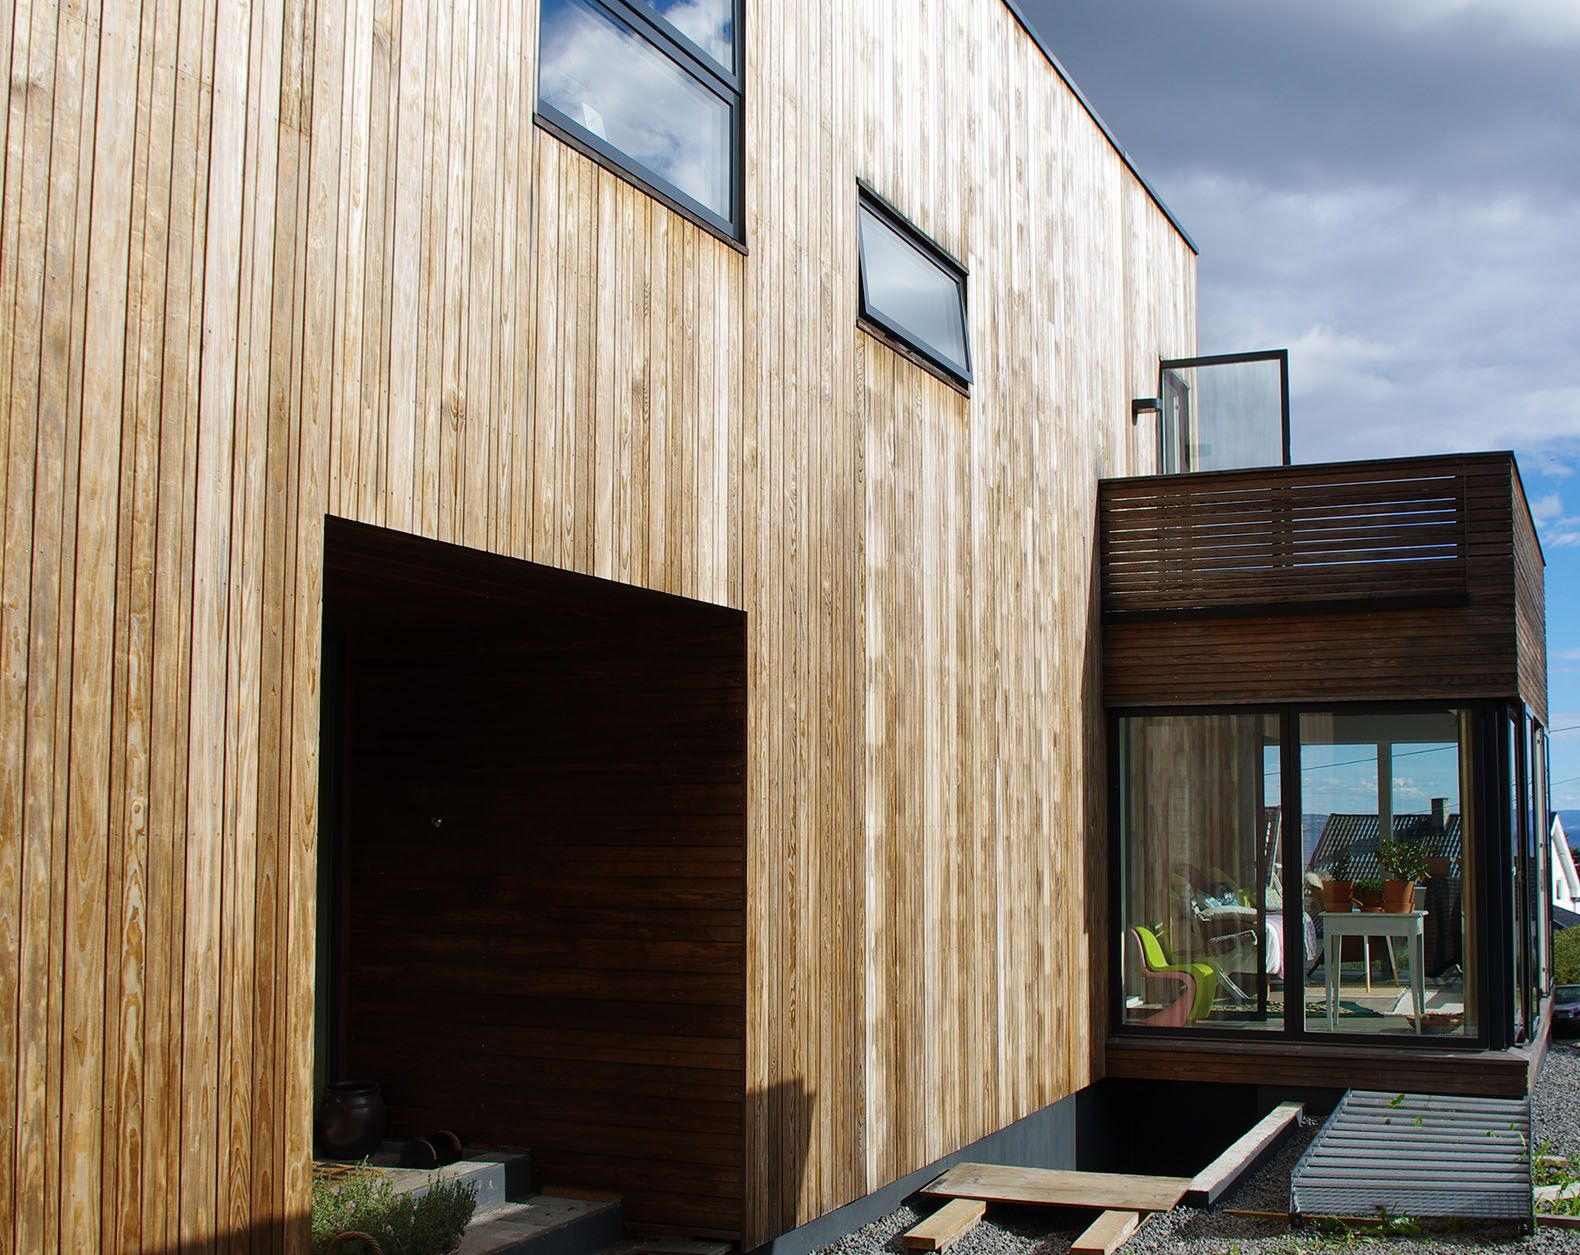 76 Year Old Funkis Home In Norway Gets A Passive House Makeover Hus